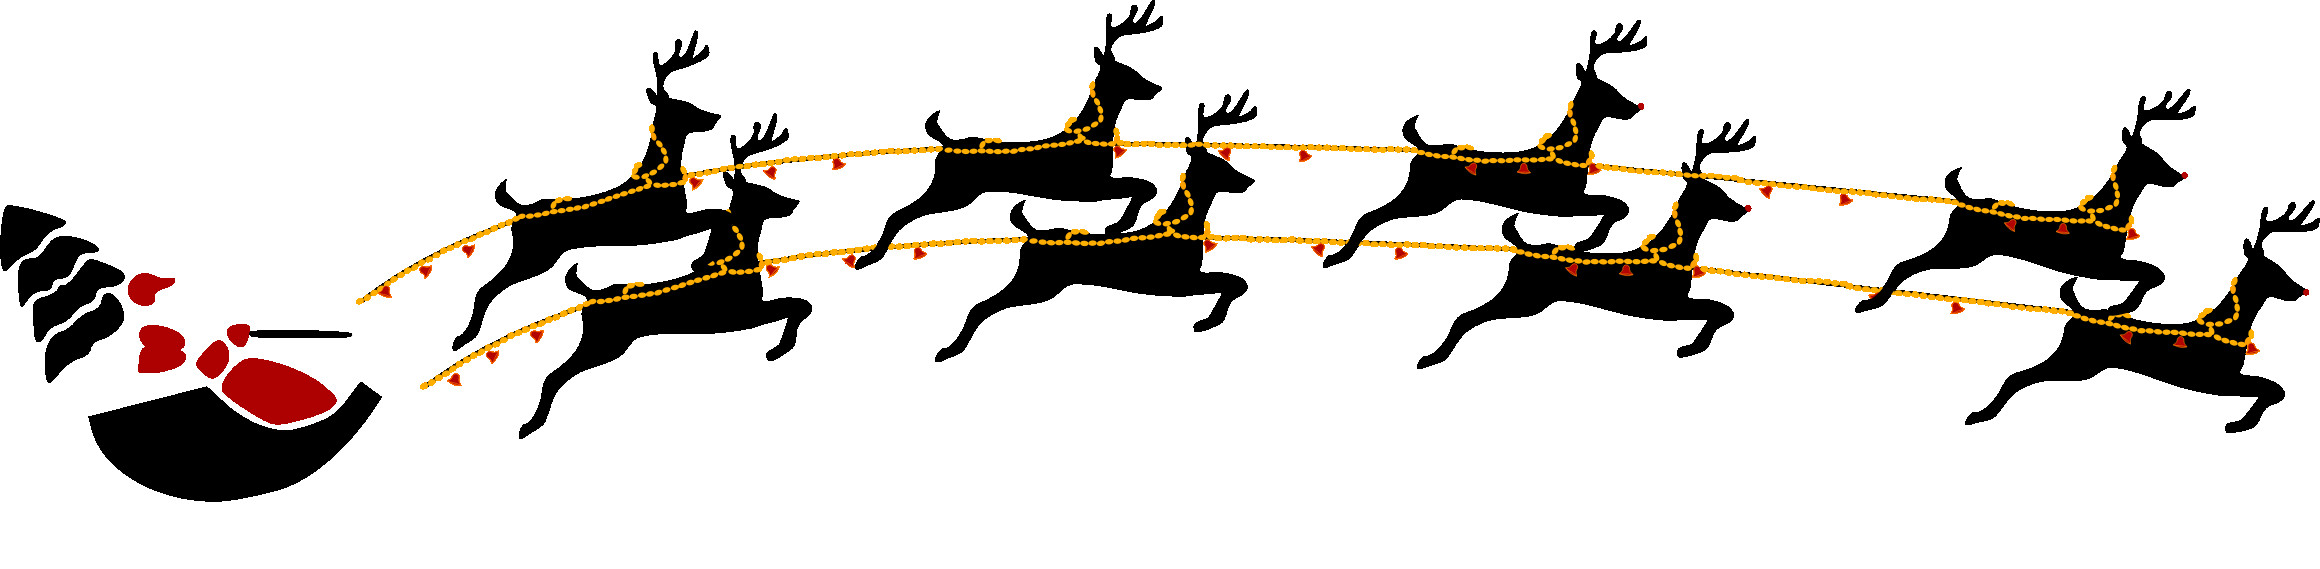 2320x569 Cute Reindeer Clip Art Clipart Free Holiday Christmas Magnificent